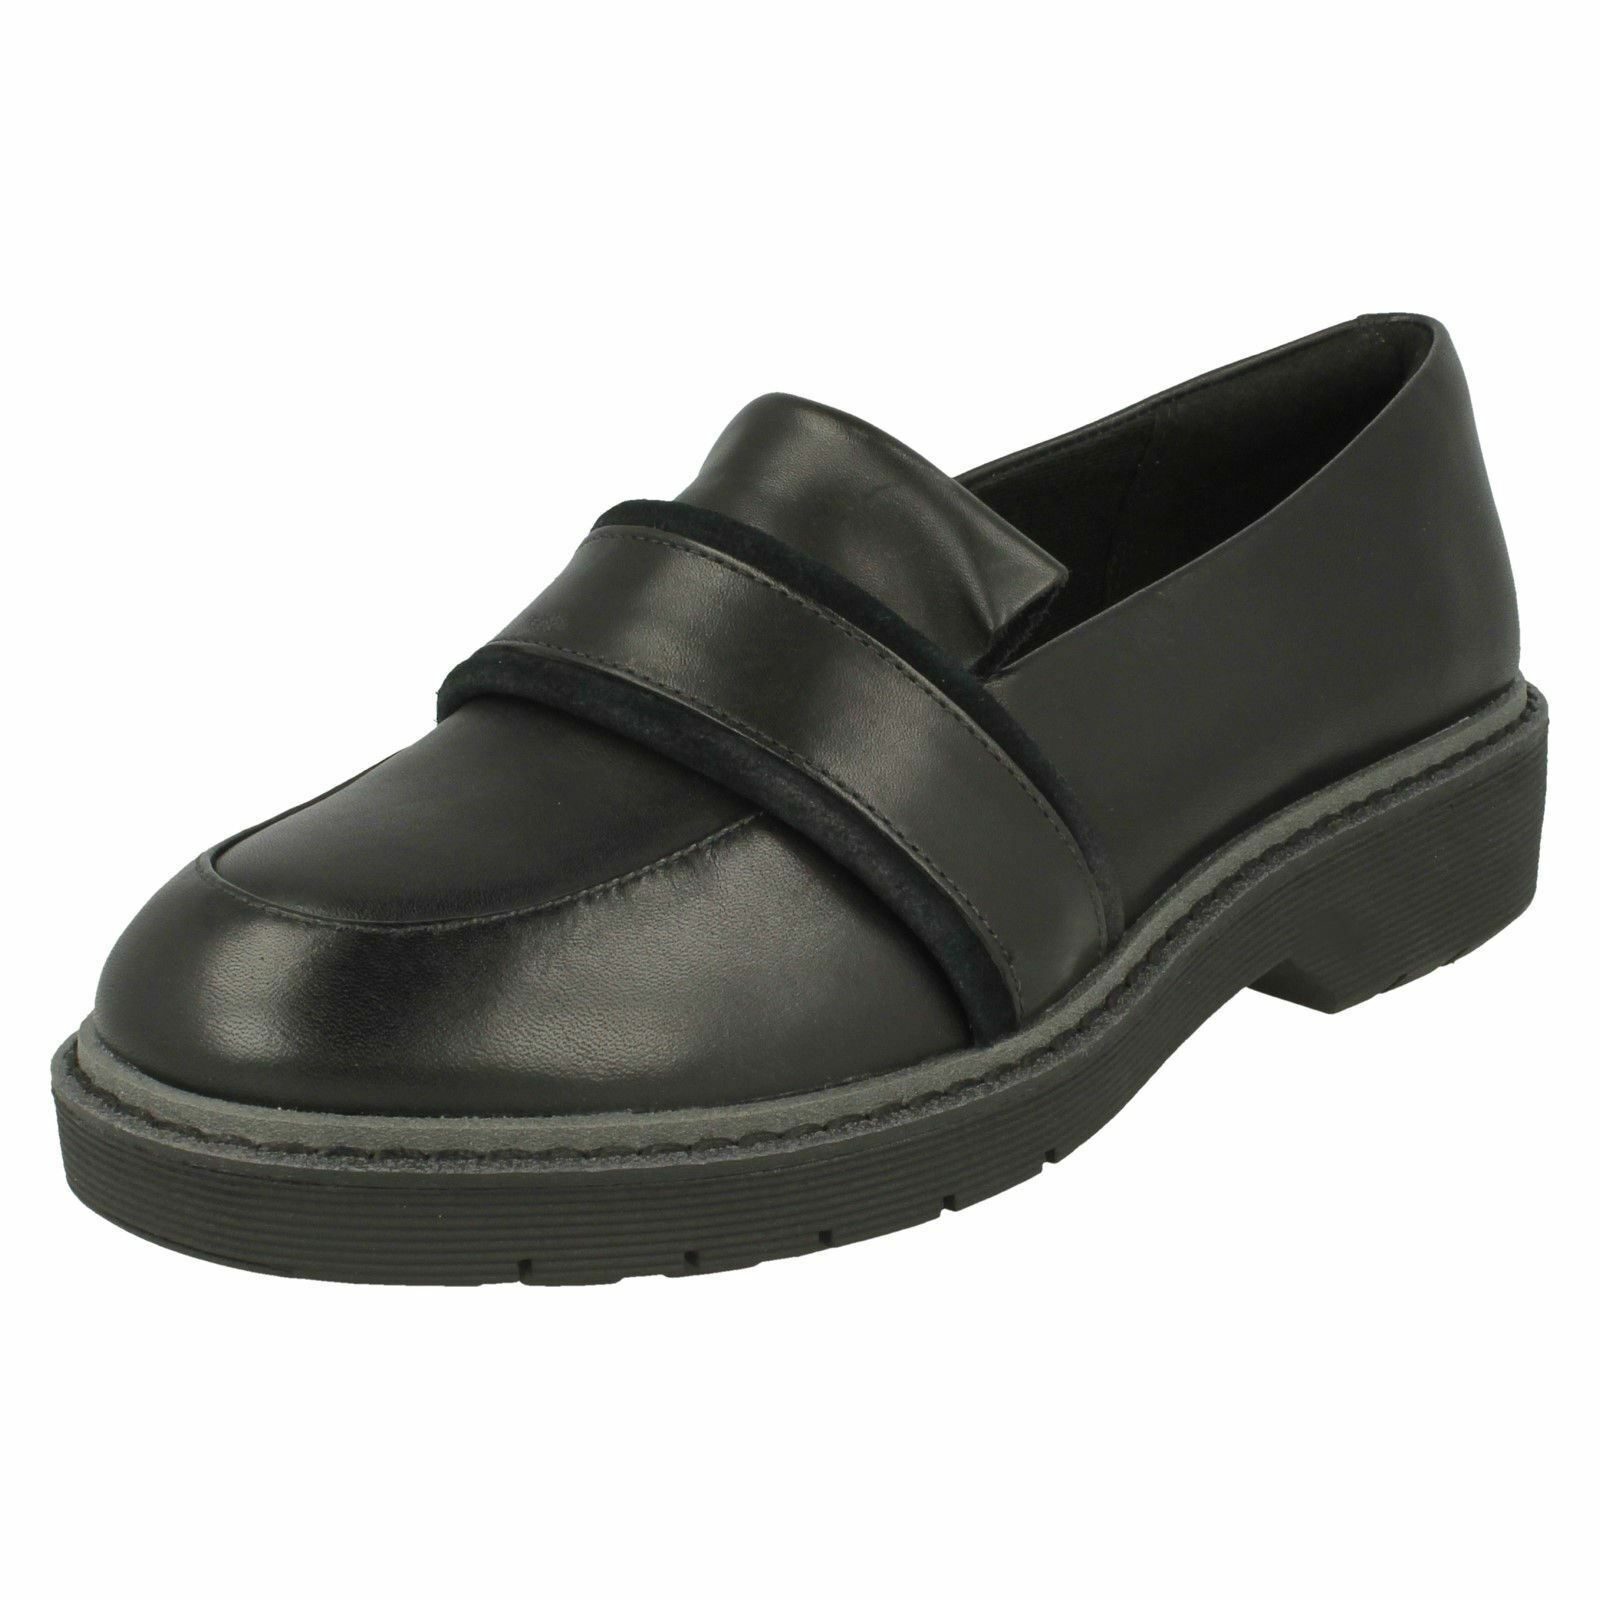 Womens Clarks Flat Loafer Inspired shoes - Alexa Ruby